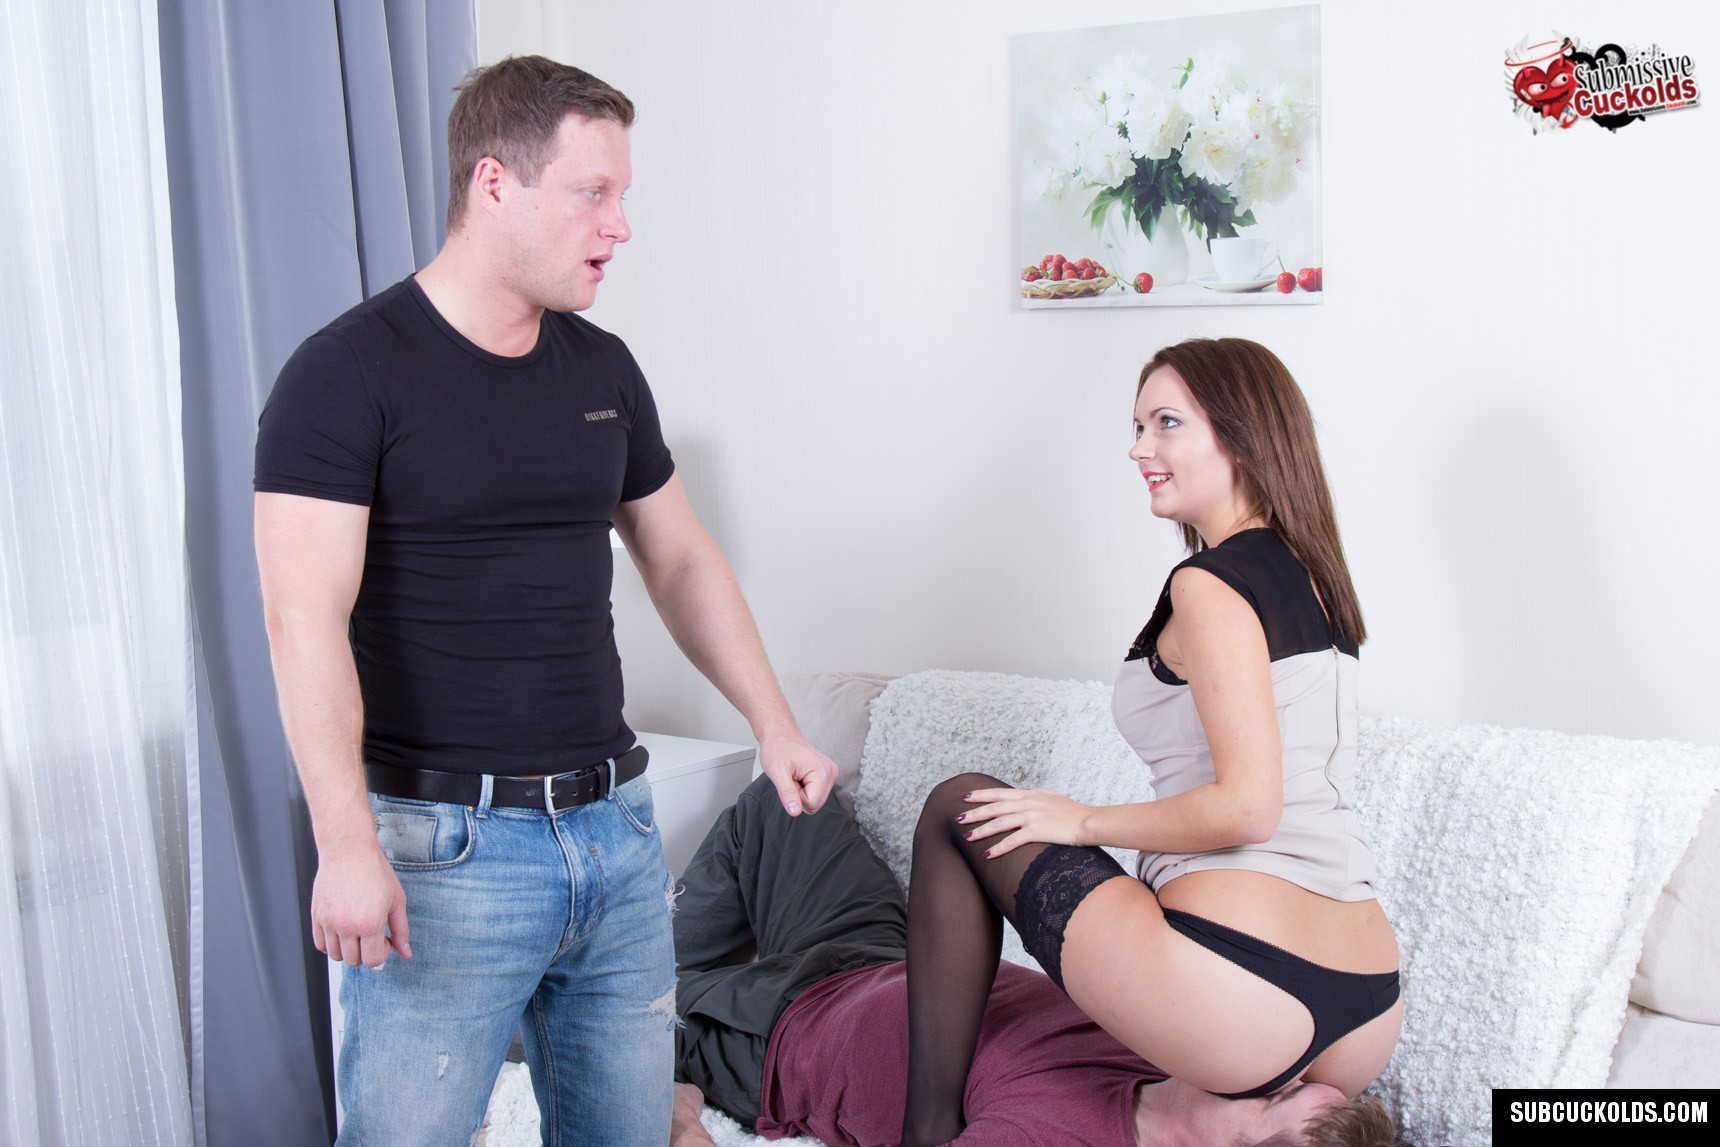 Cuckold hubby has to lick off wife's asshole after her lover fucks it hard